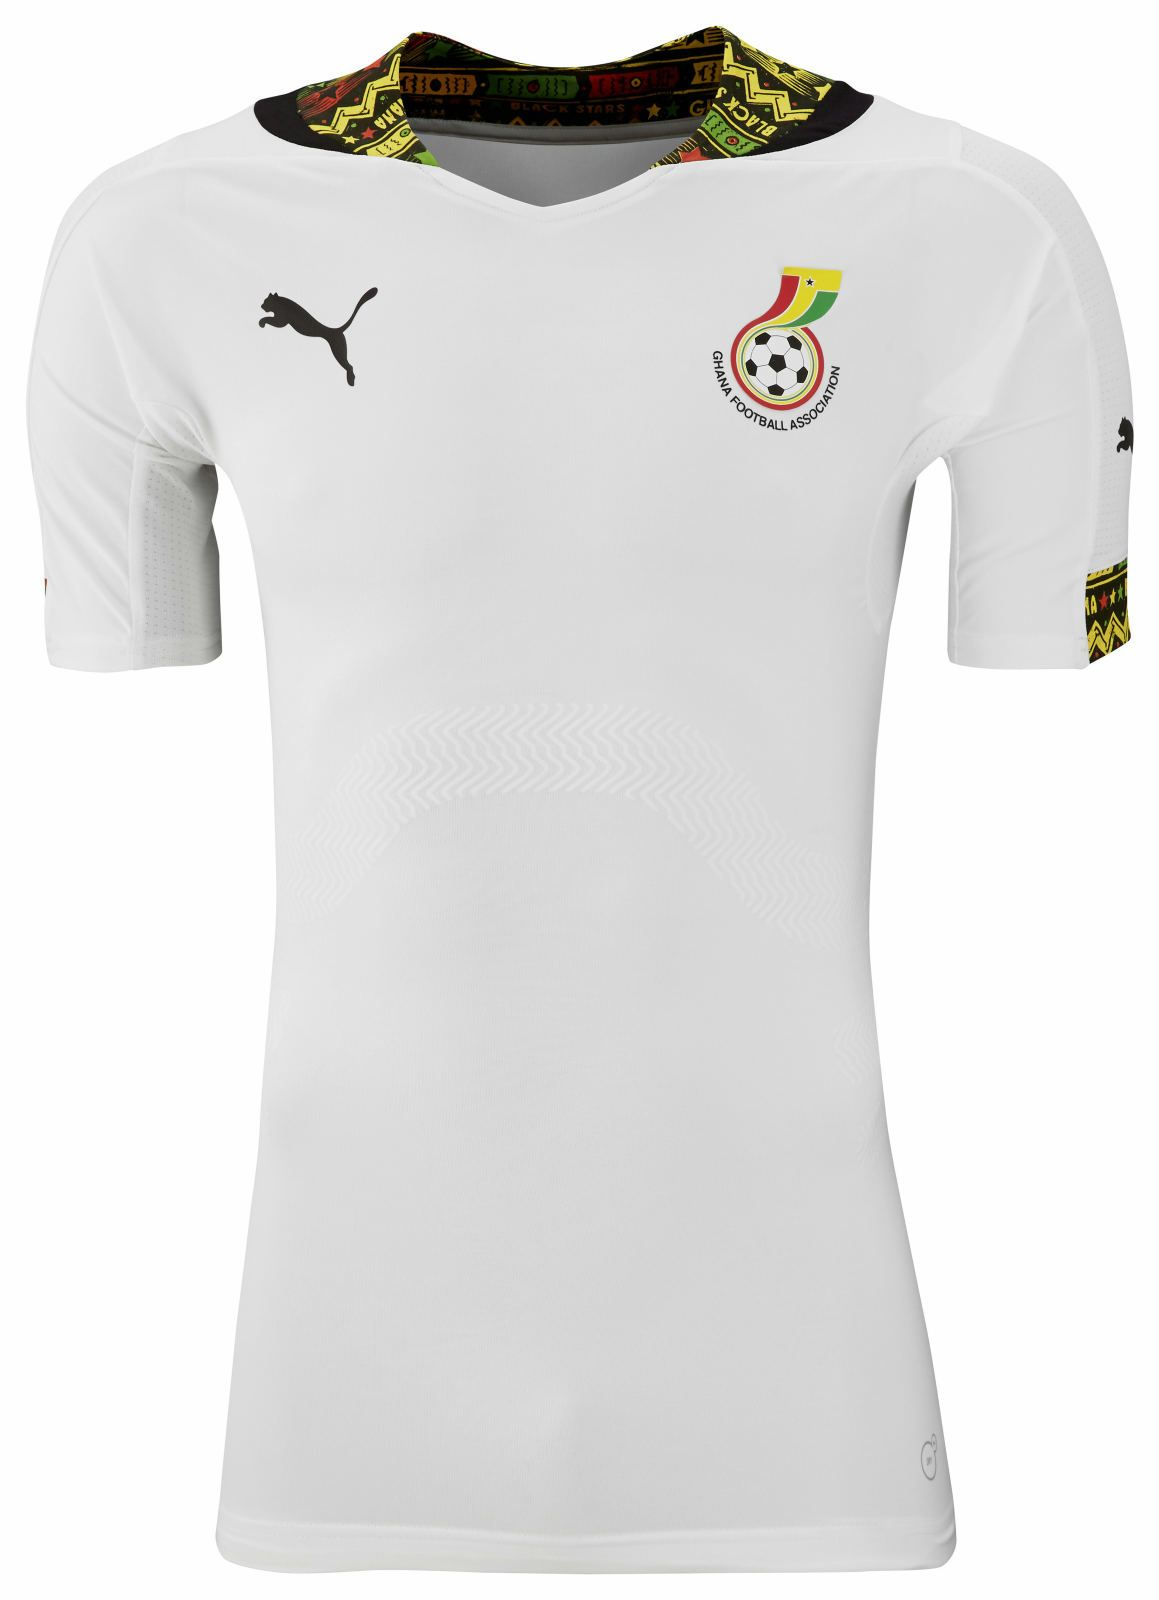 ed13c983fb Ghana (Ghana Football Association) - 2014 World Cup Home Shirt ...